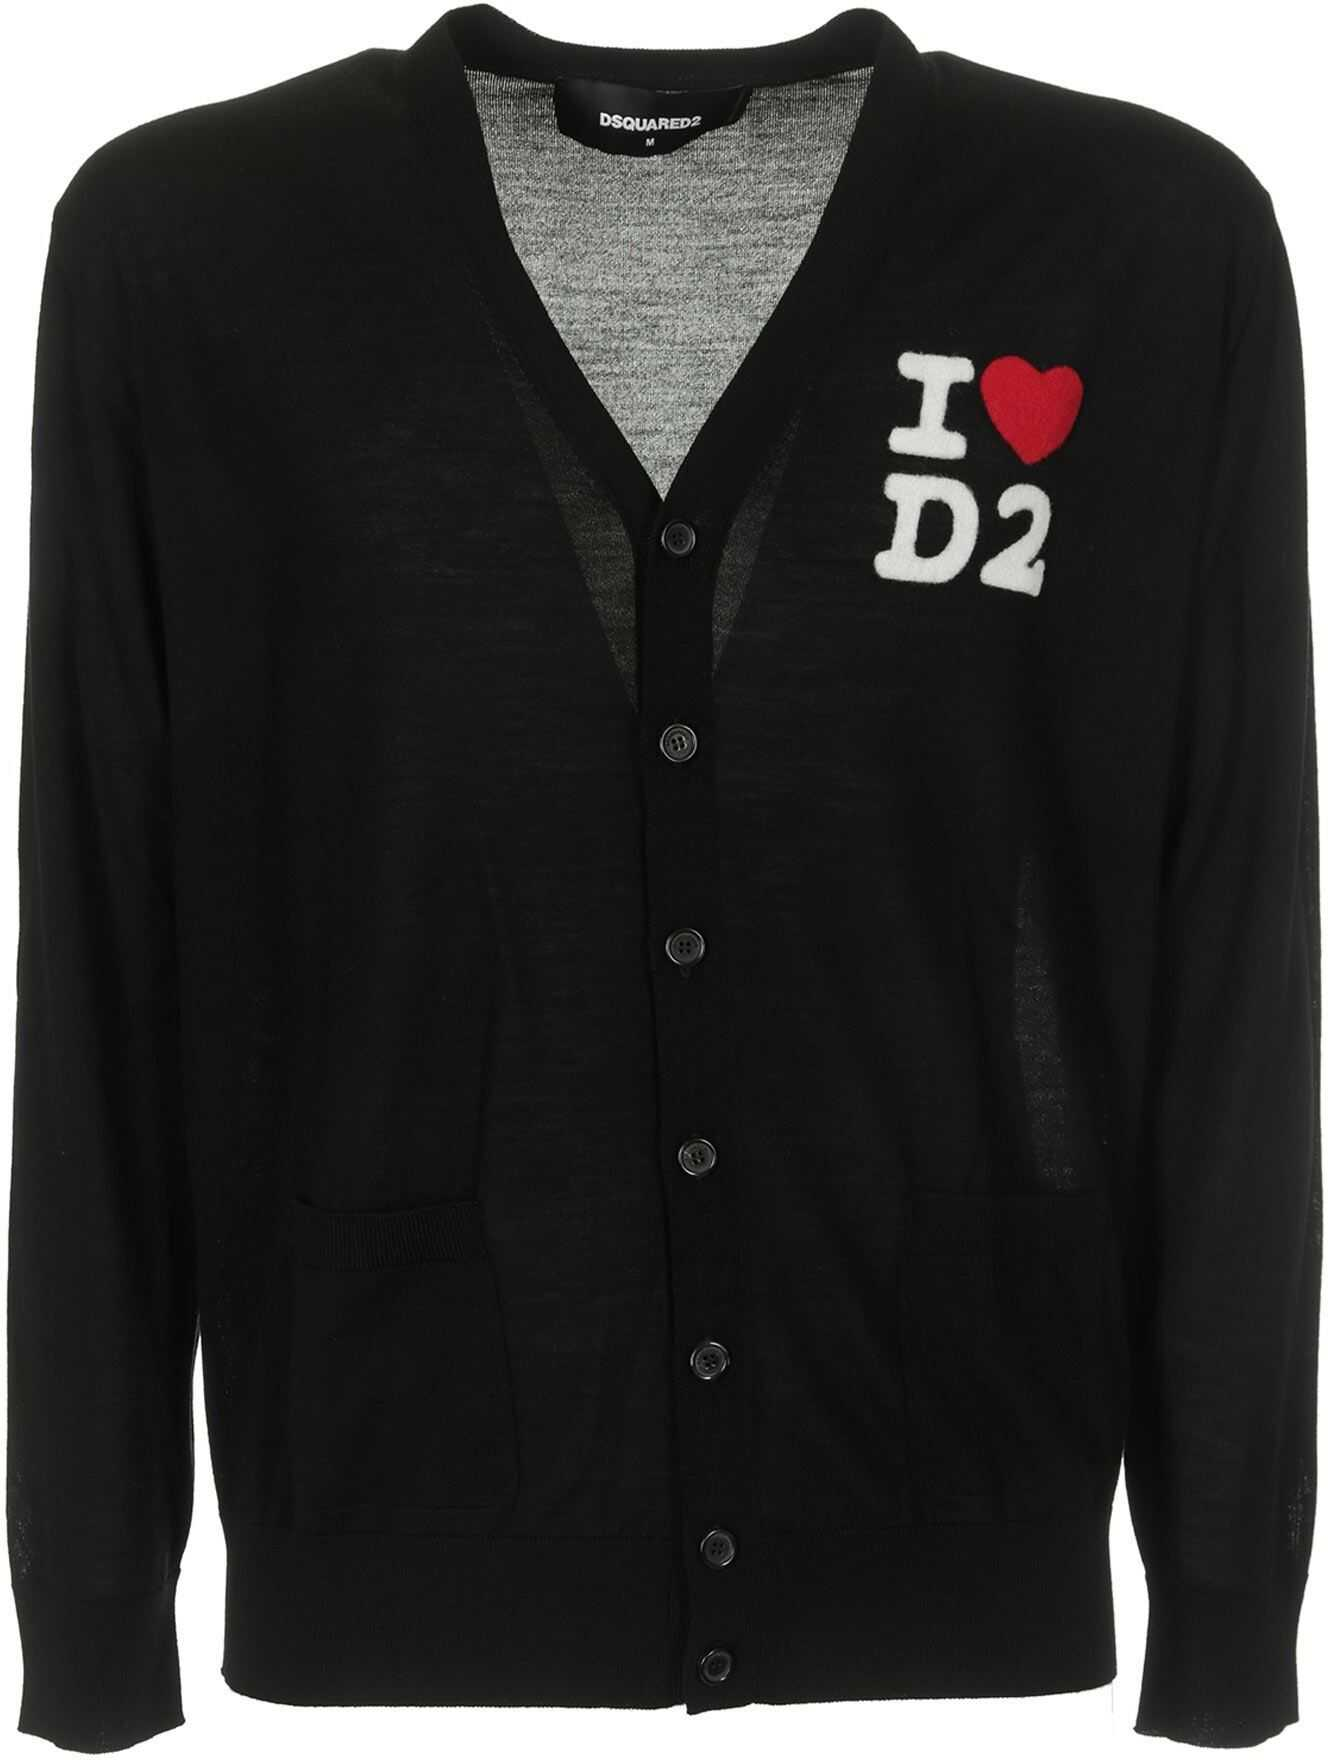 DSQUARED2 Wool Cardigan With Logo In Black Black imagine